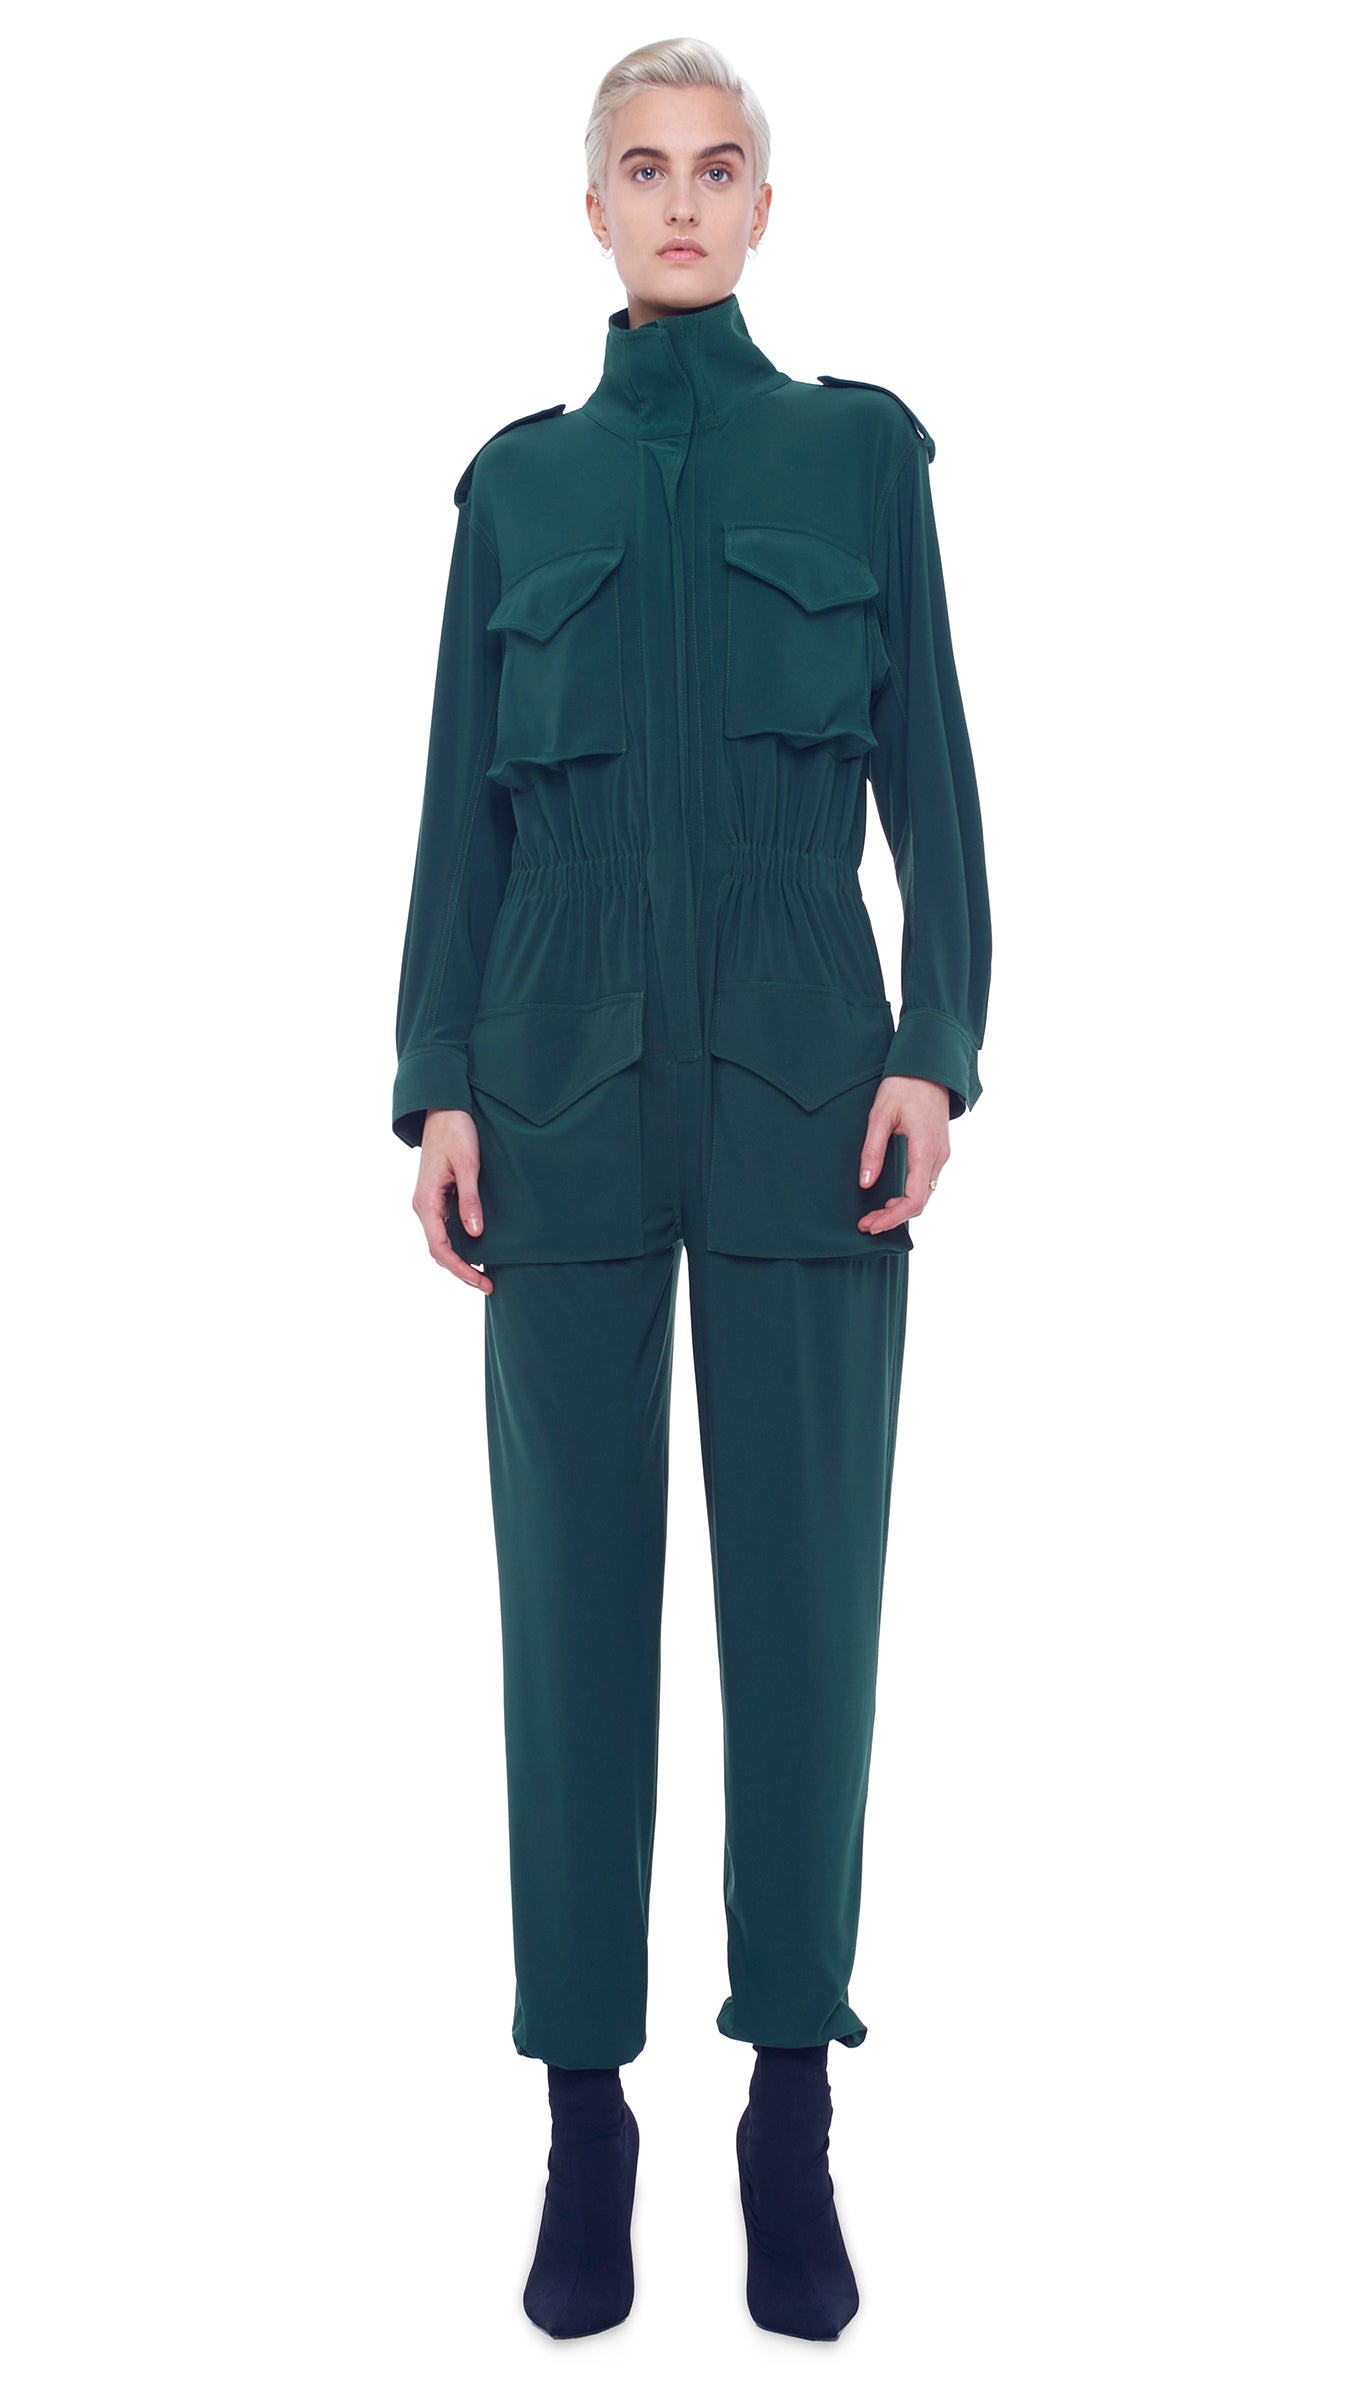 TURTLE CARGO JUMPSUIT - 1